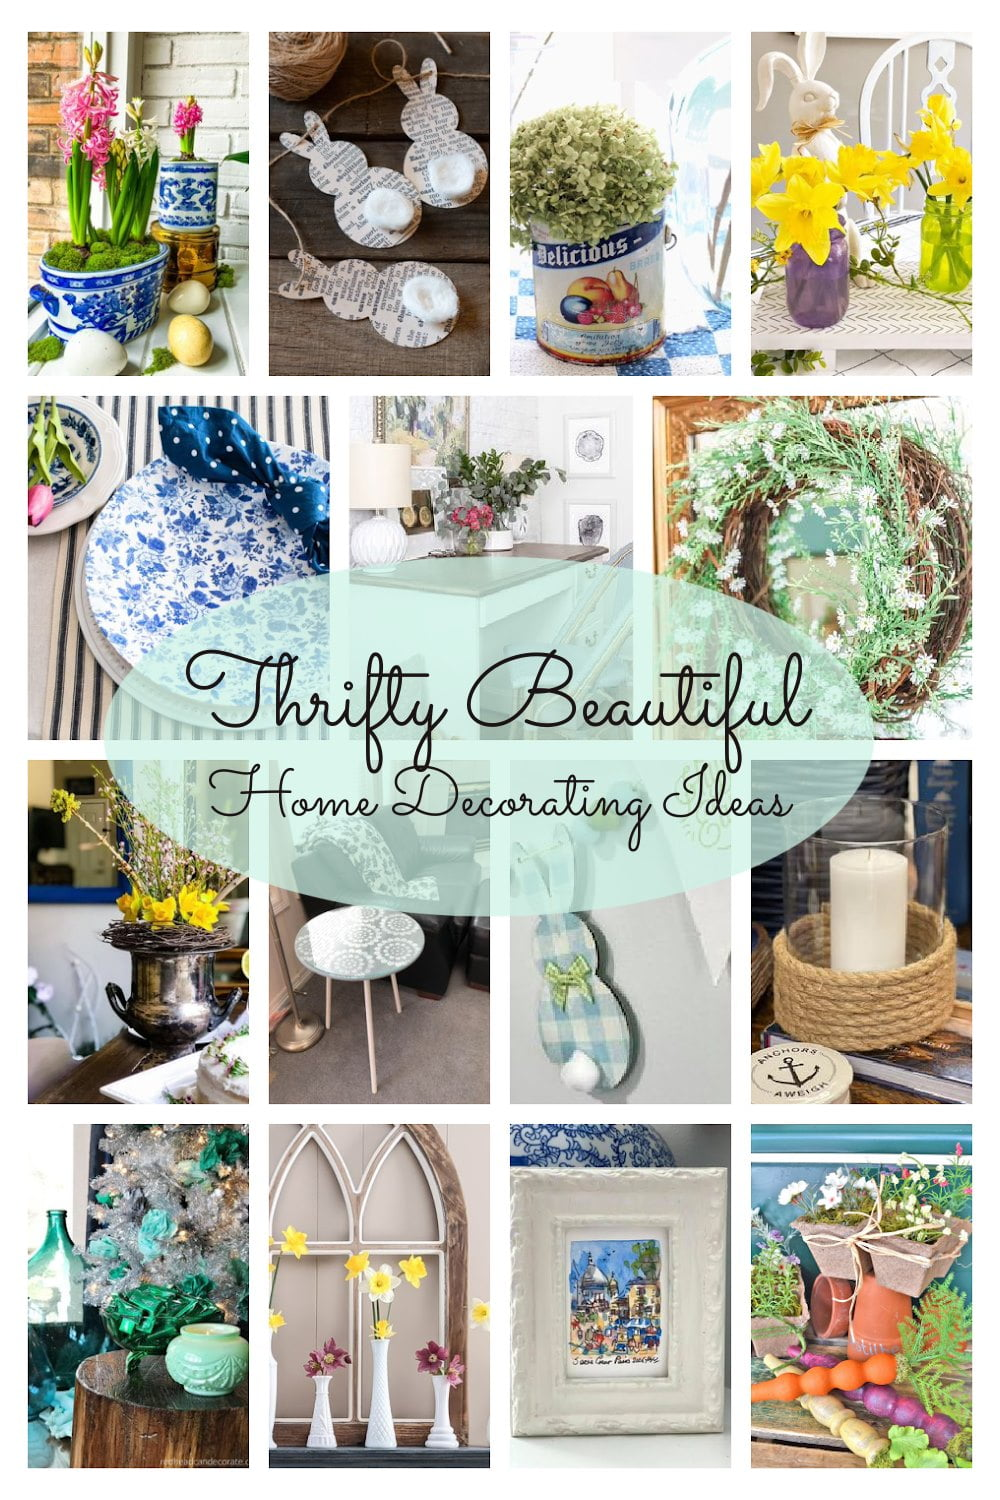 Thrifty Home Decorating Ideas graphic